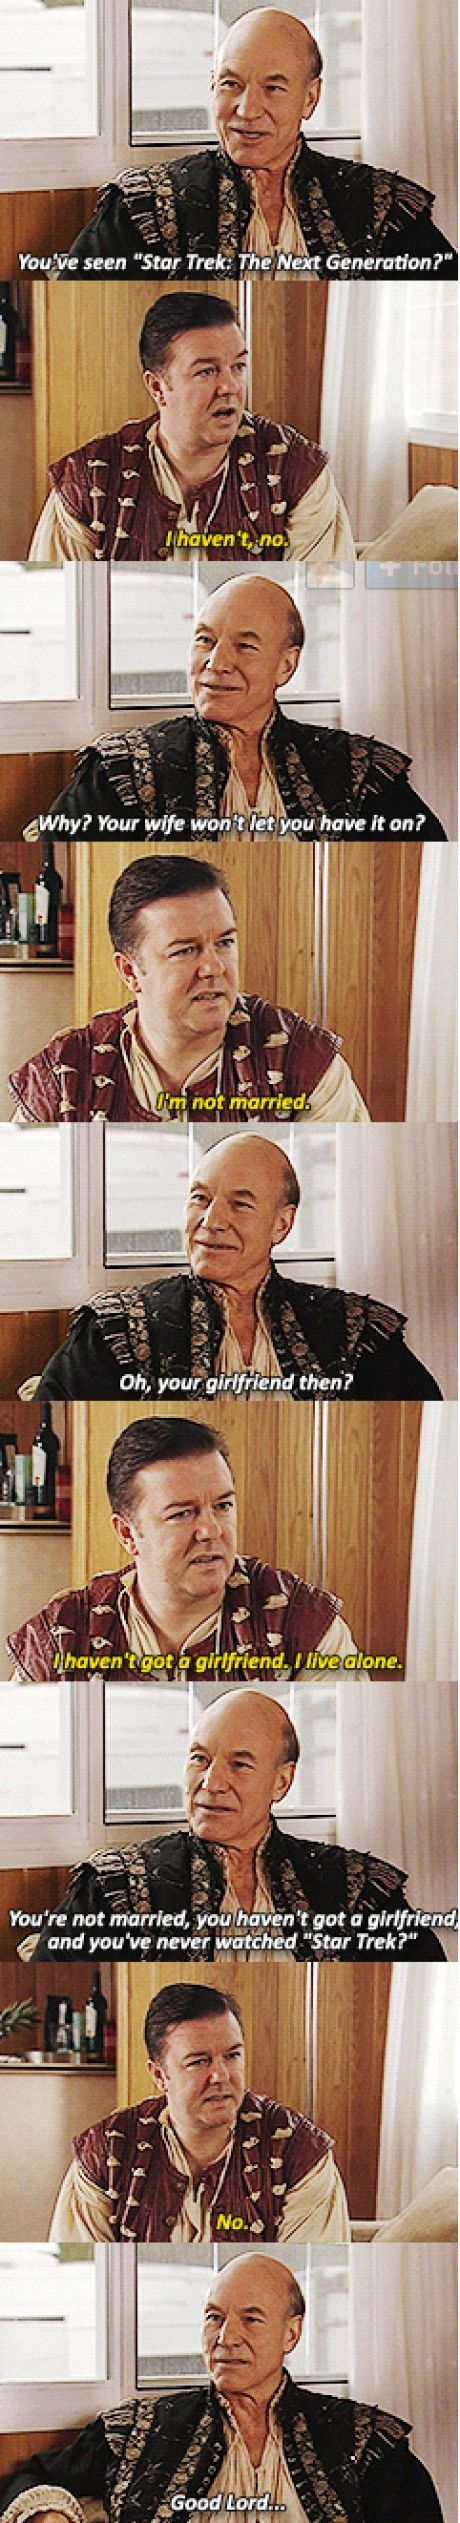 Ricky Gervais hasn't seen TNG, and Sir Patrick is appalled